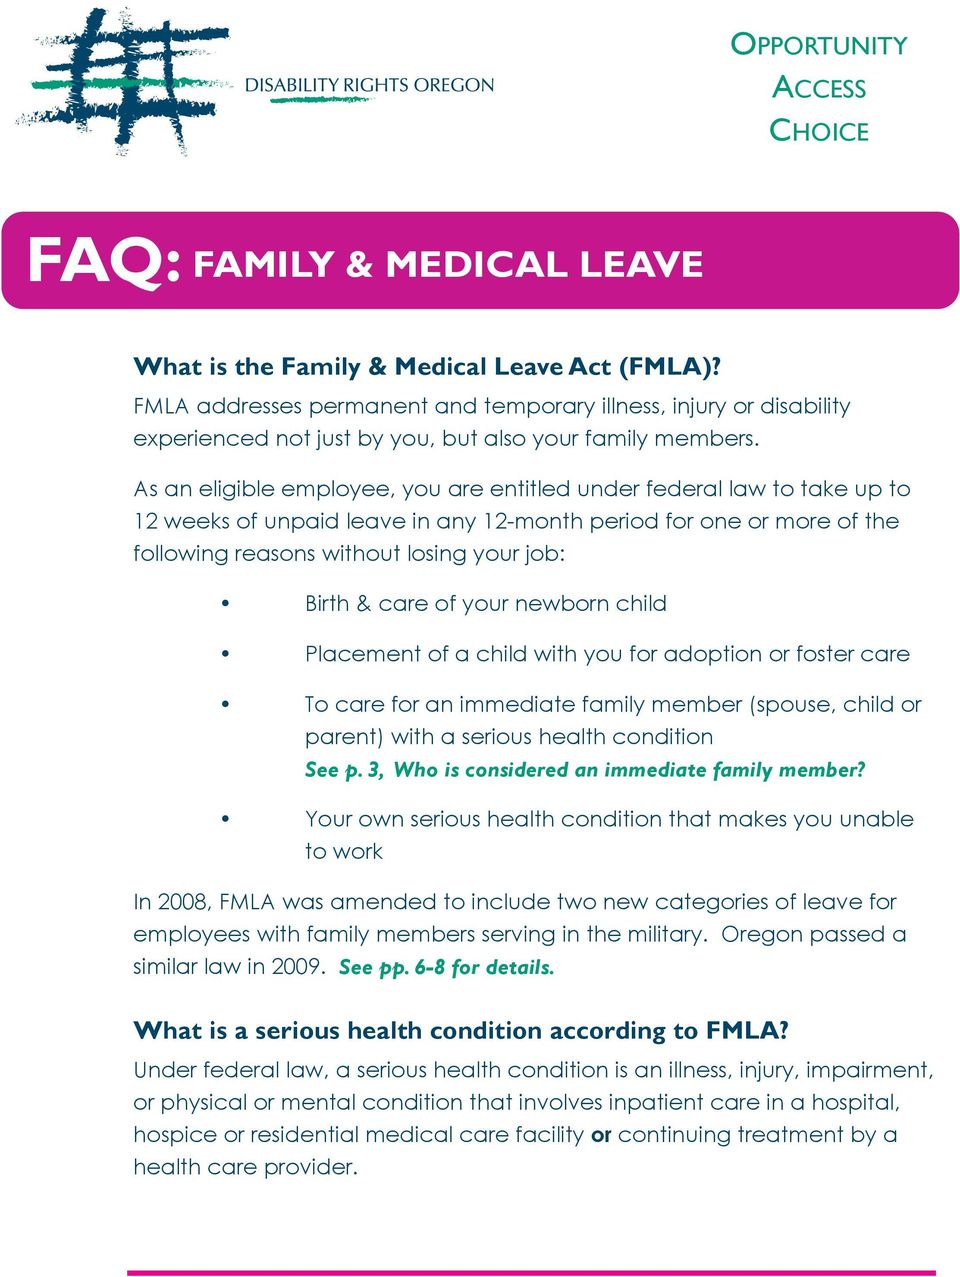 As an eligible employee, you are entitled under federal law to take up to 12 weeks of unpaid leave in any 12-month period for one or more of the following reasons without losing your job: Birth &